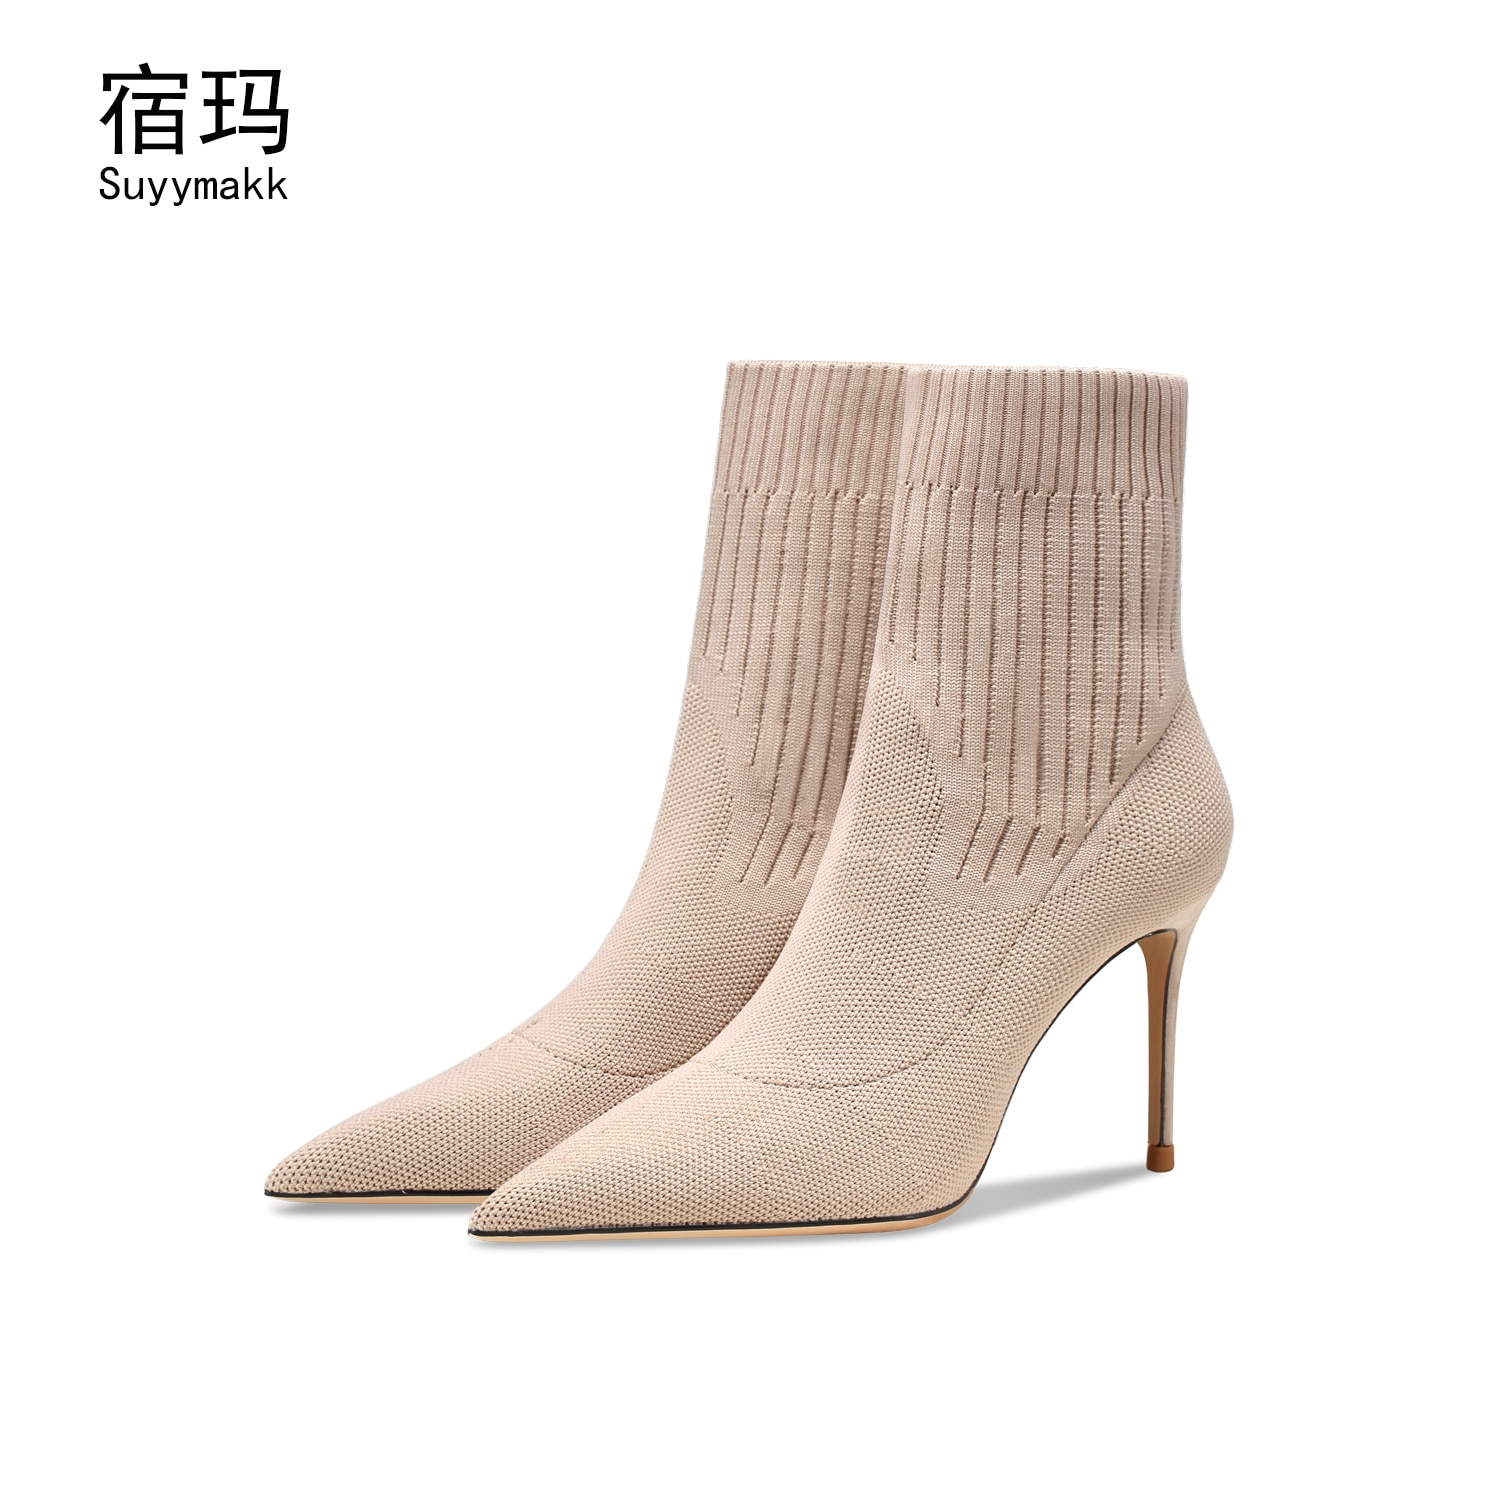 newest winter boots for women print flowers ankle boots pointed toe high heels boots 12 cm sexy stretch boots short dress shoes 2021 New Autumn Winter Sexy Socks Boots Women Pointed Toe Net Knitted Elastic Boots Women High Heels Shoes Fashion Short Boots 8